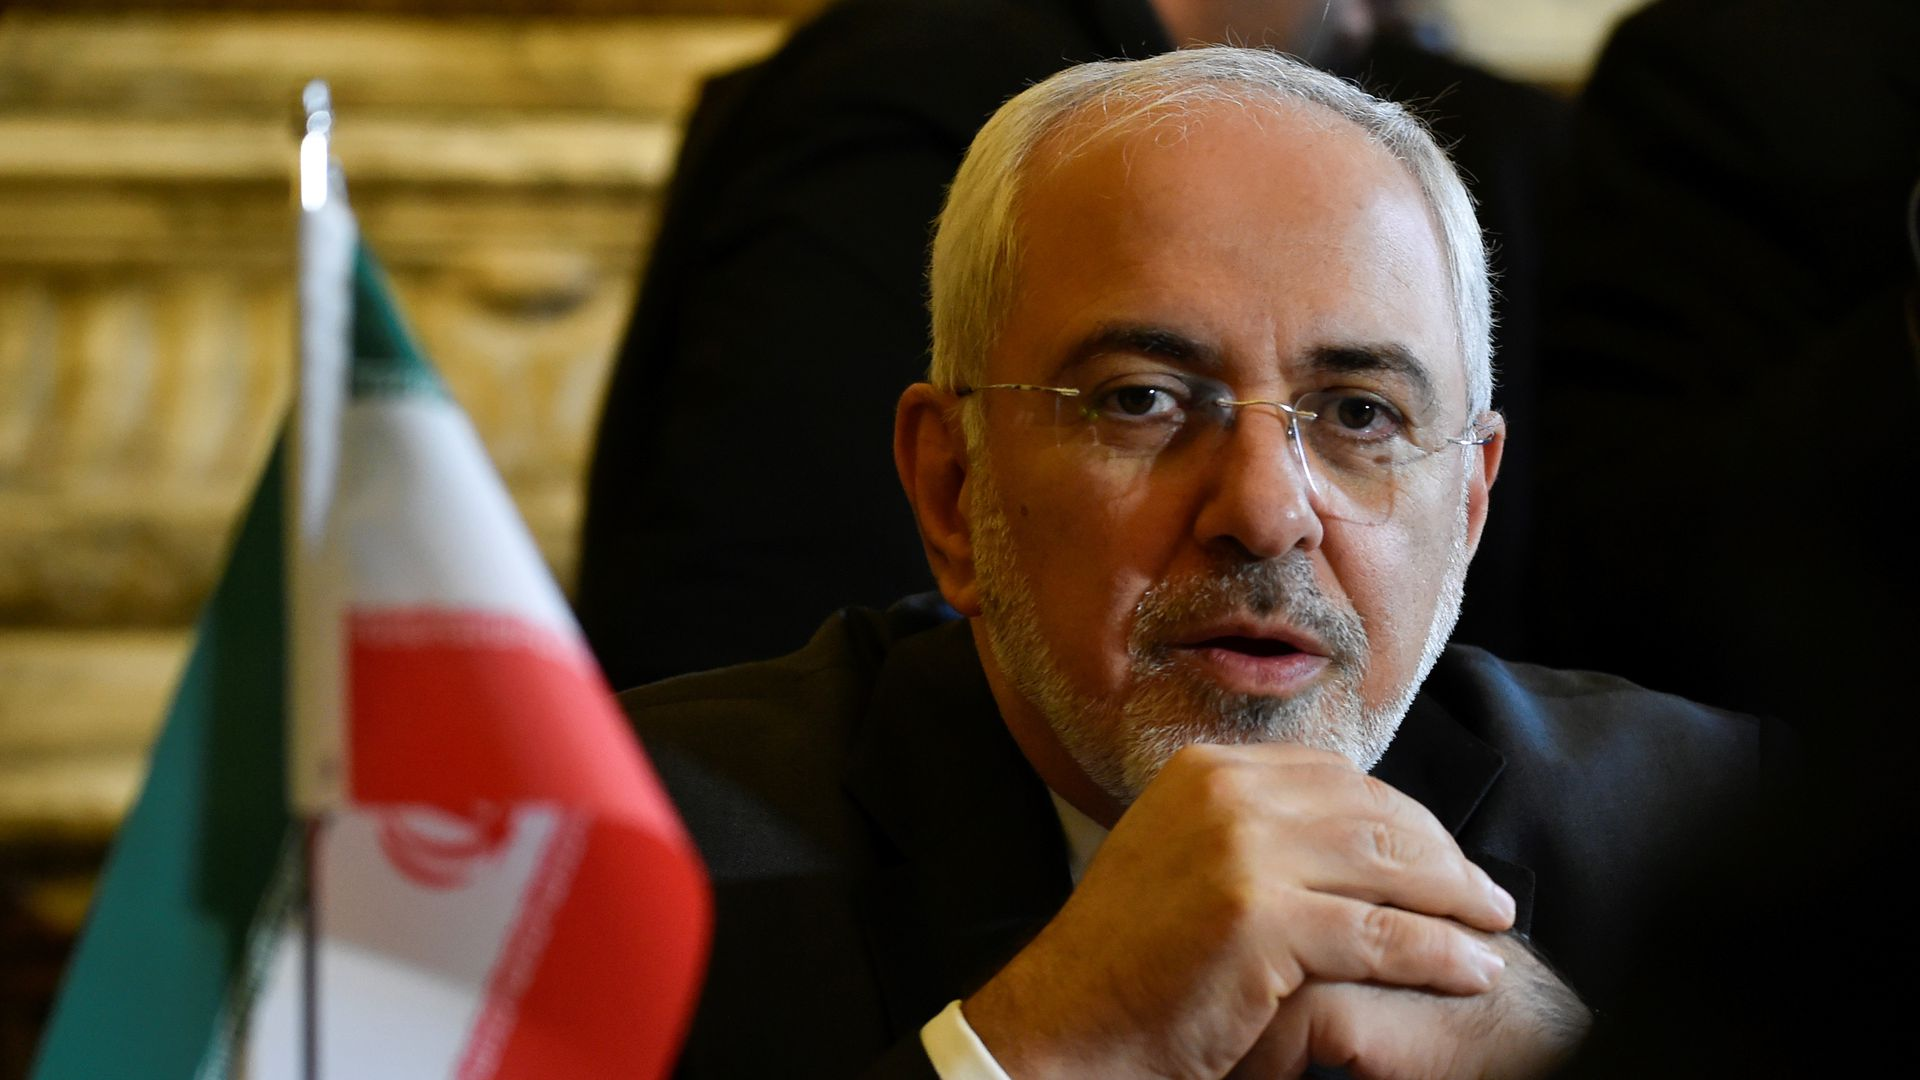 Zarif sits next to an Iranian flag